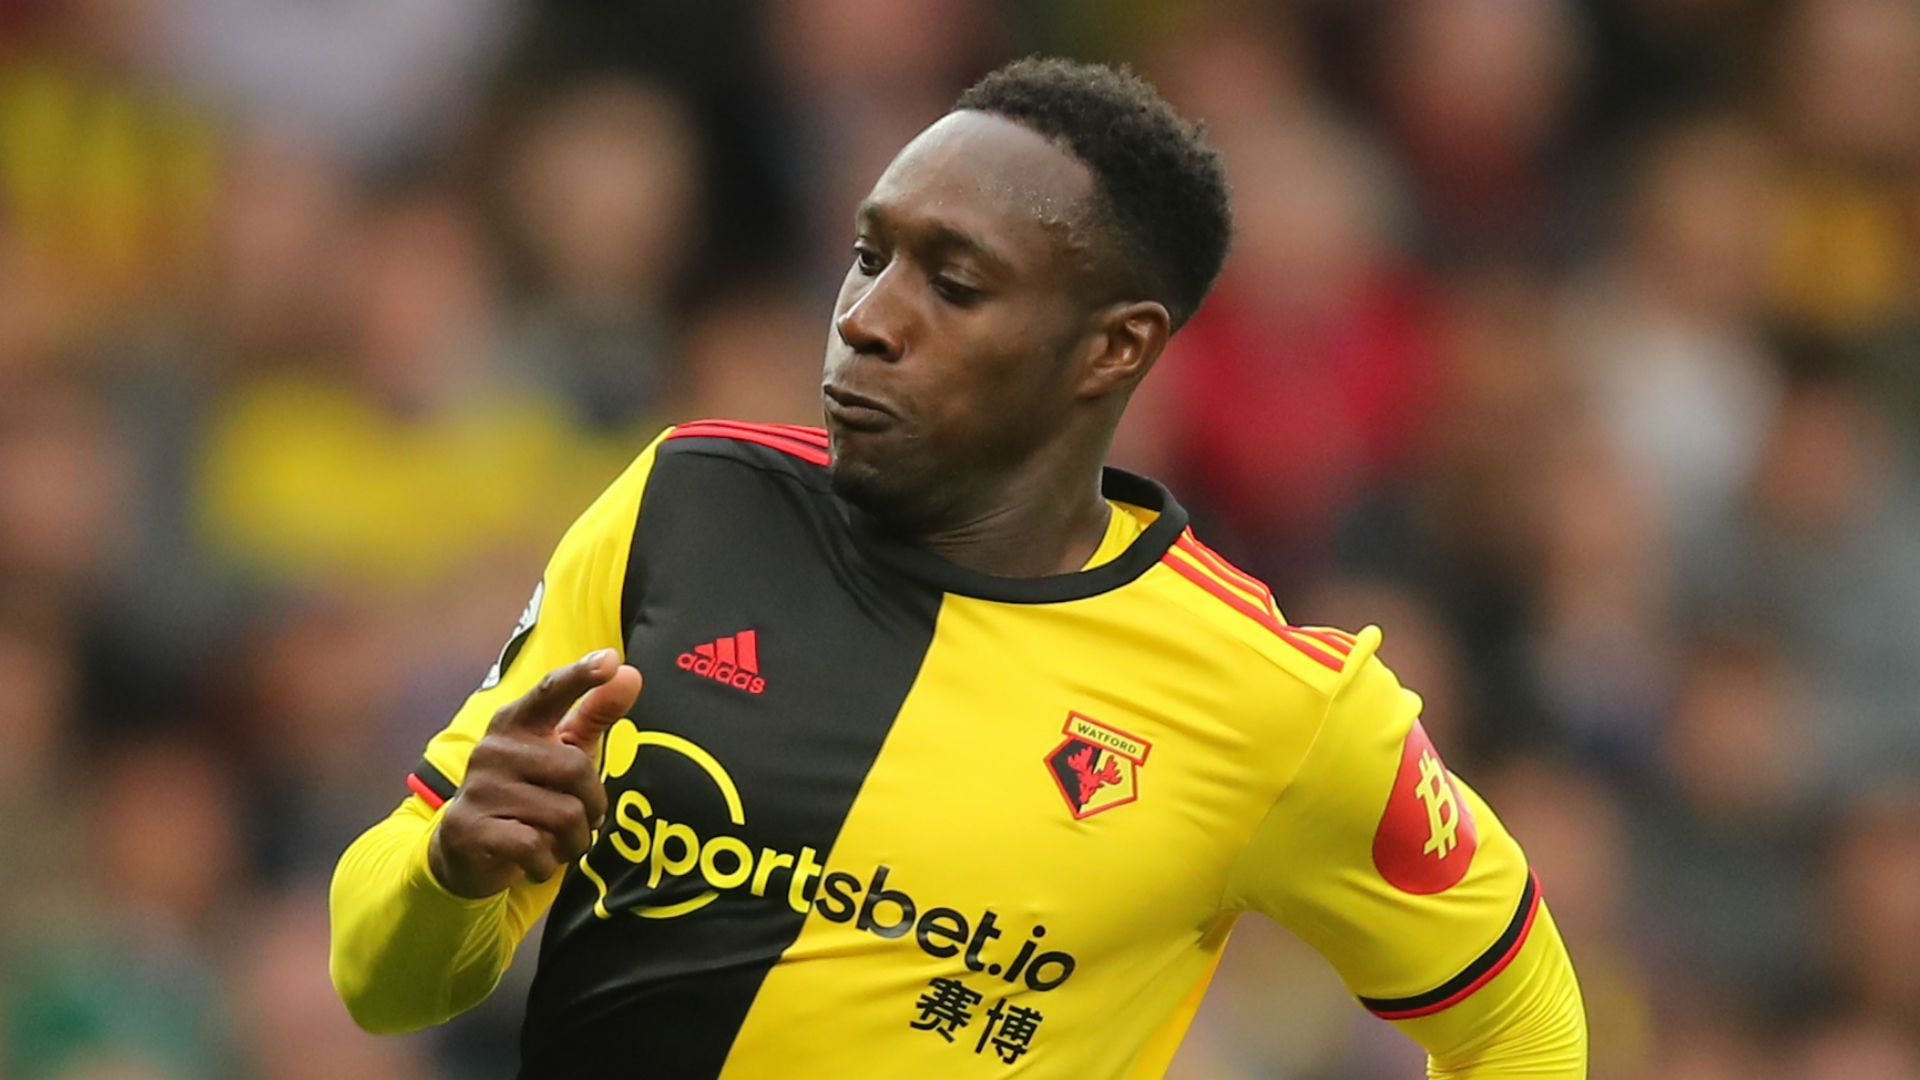 Danny Welbeck's spectacular bicycle kick propelled Watford